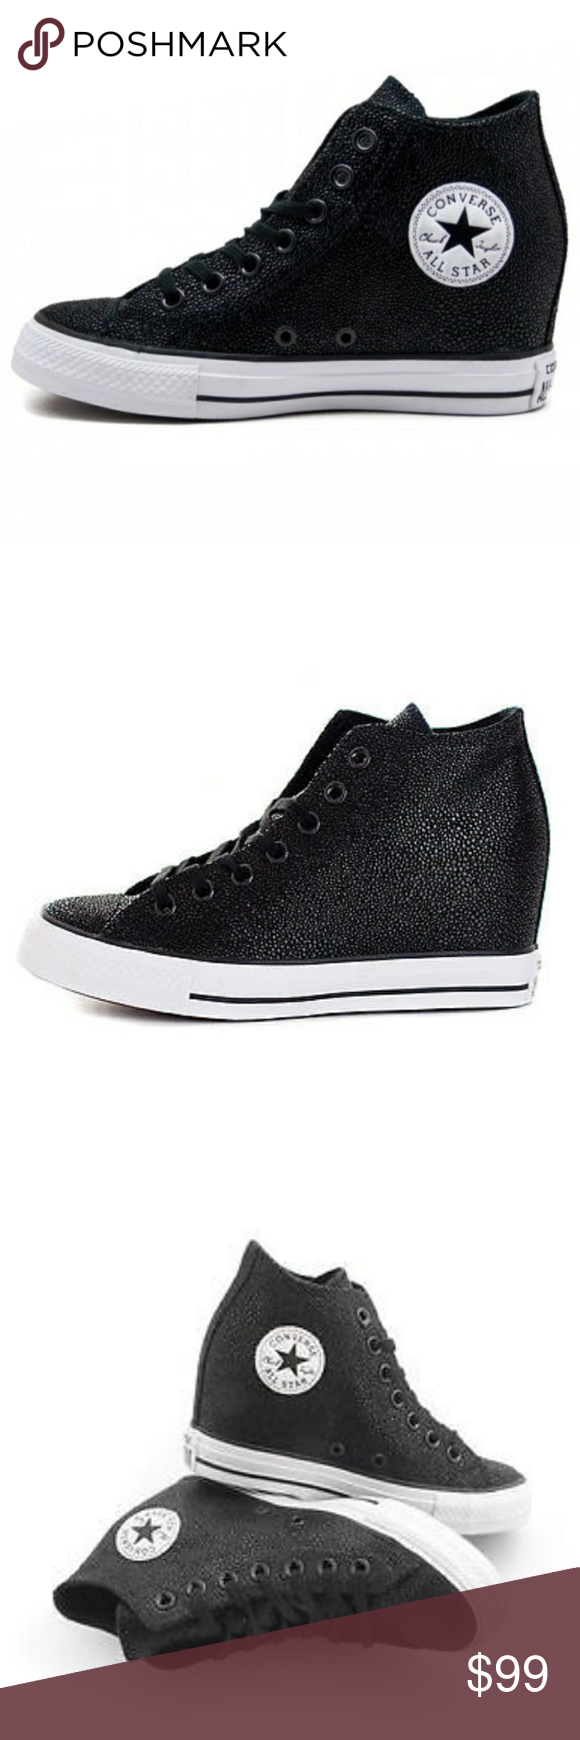 deff533d3a4c NWT Converse Chuck Taylor All Star Leather Wedge - Brand new in box - Black  and